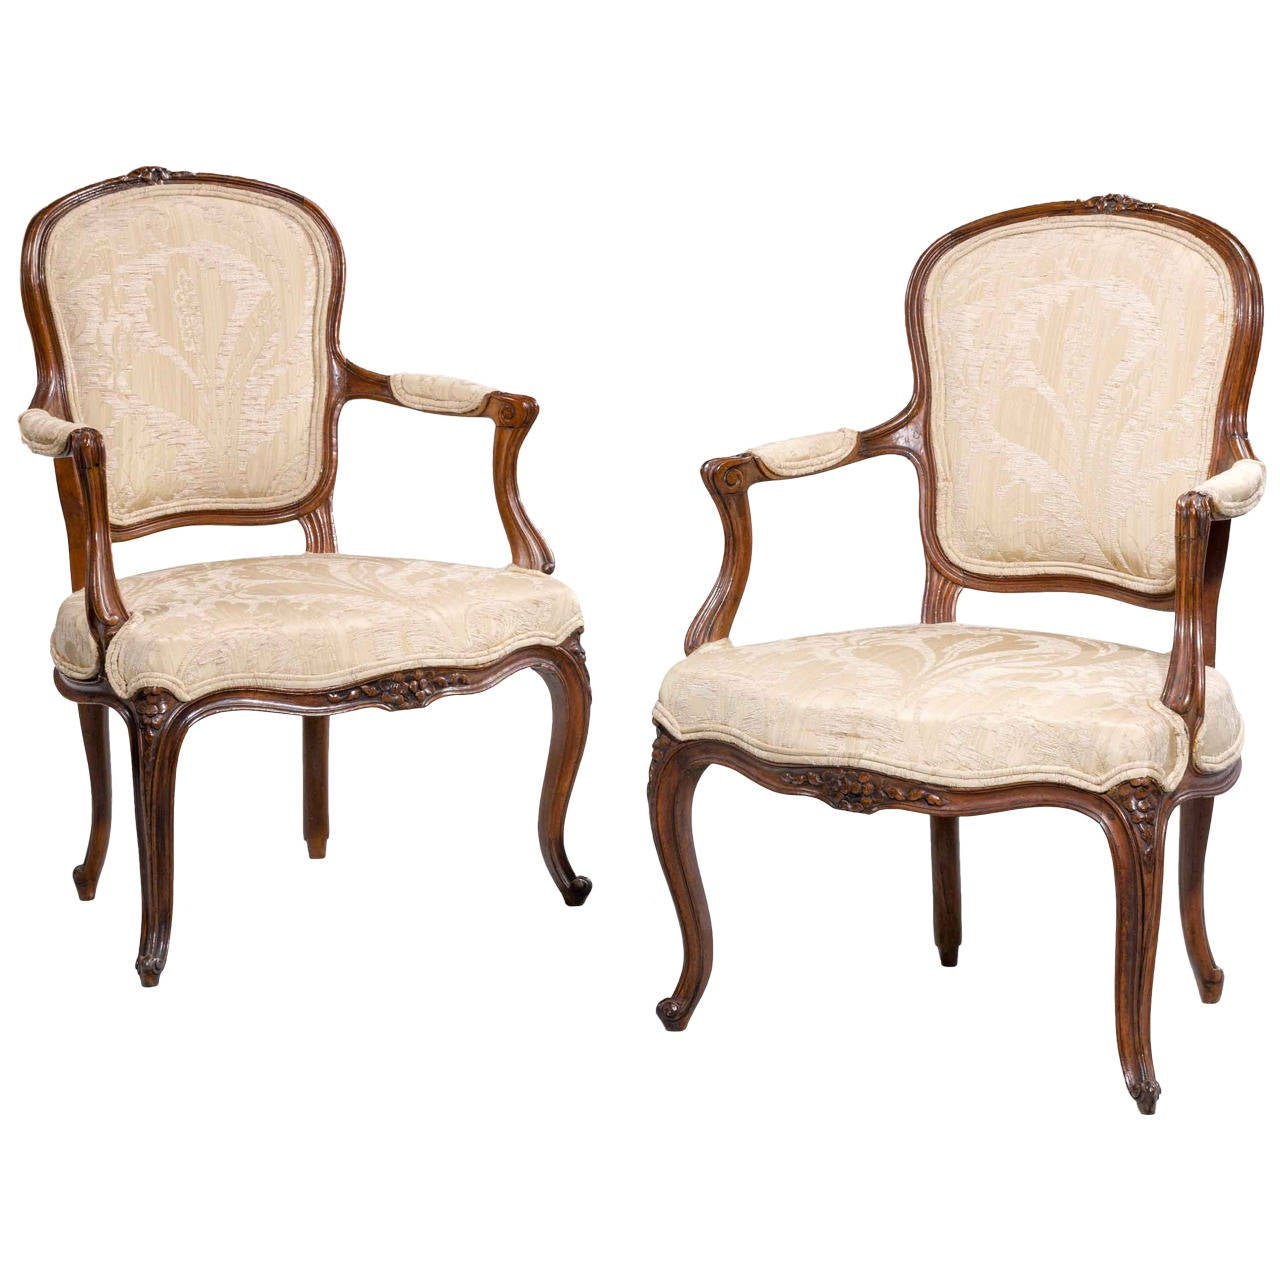 pair of 18th century louis xv period fauteuils for sale at 1stdibs. Black Bedroom Furniture Sets. Home Design Ideas